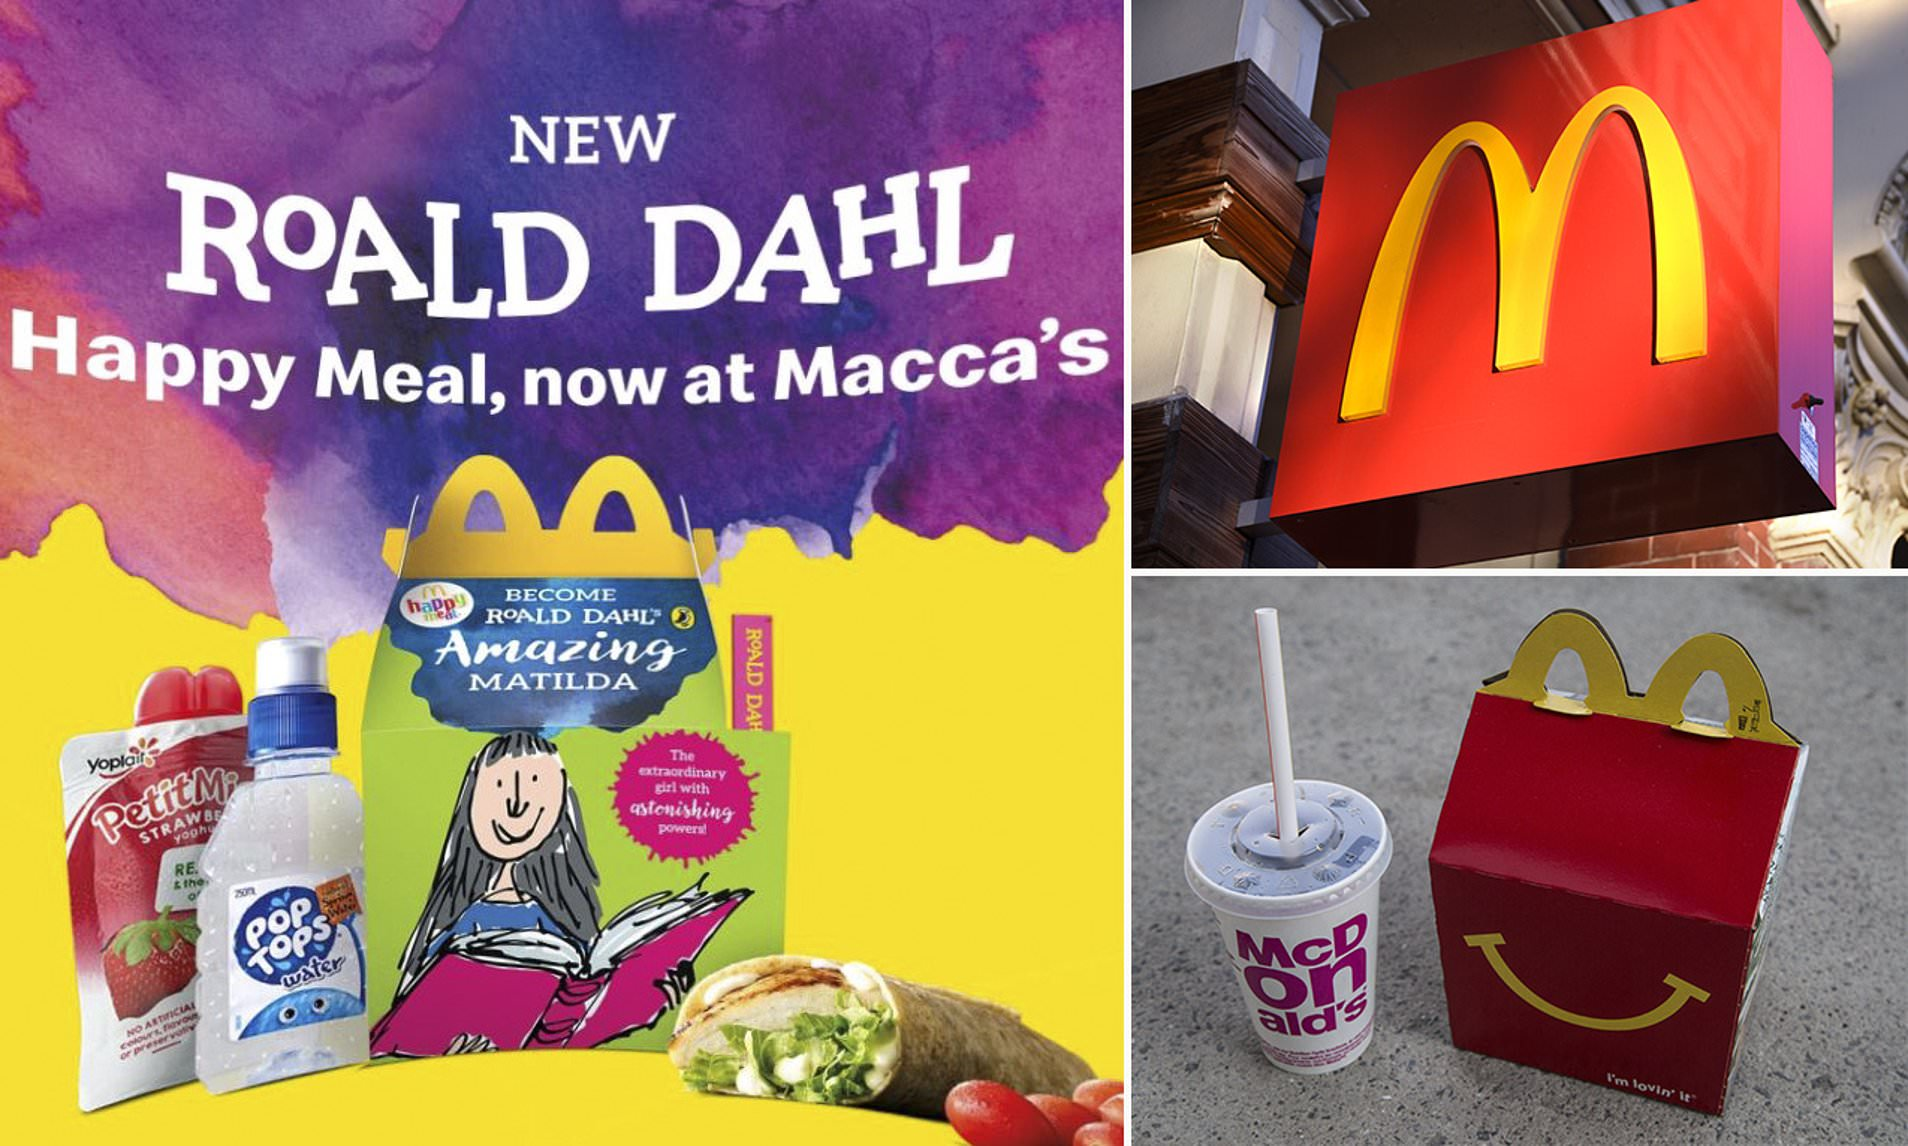 Roald-Dahl-Happy-Meal